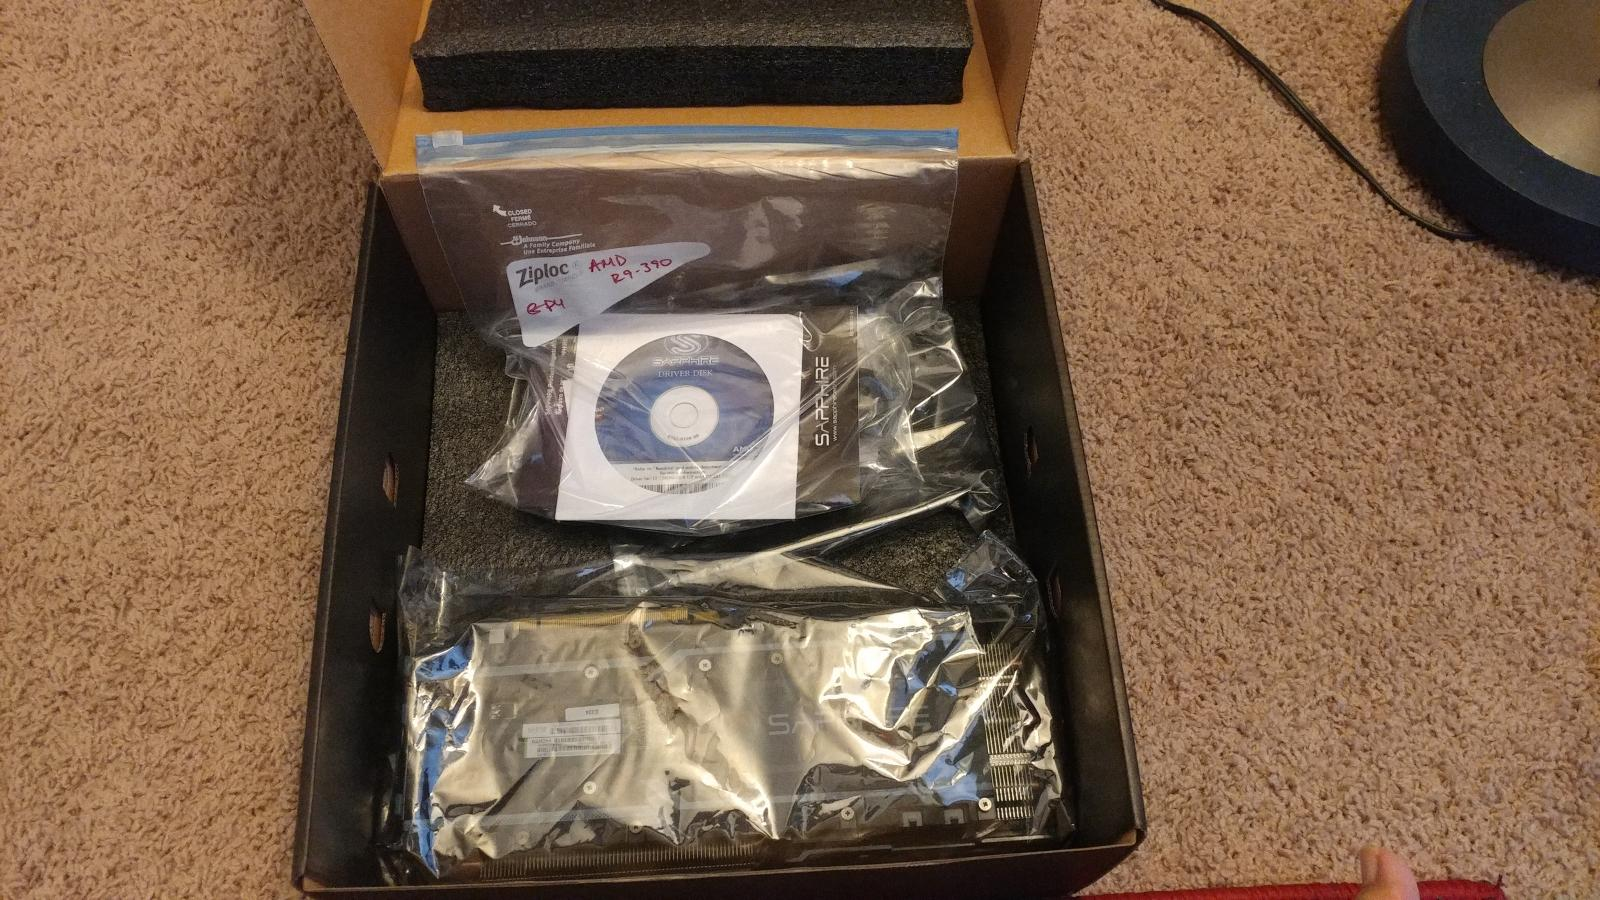 Sapphire R9 390 8gb Gpu For Sale Heatware Com